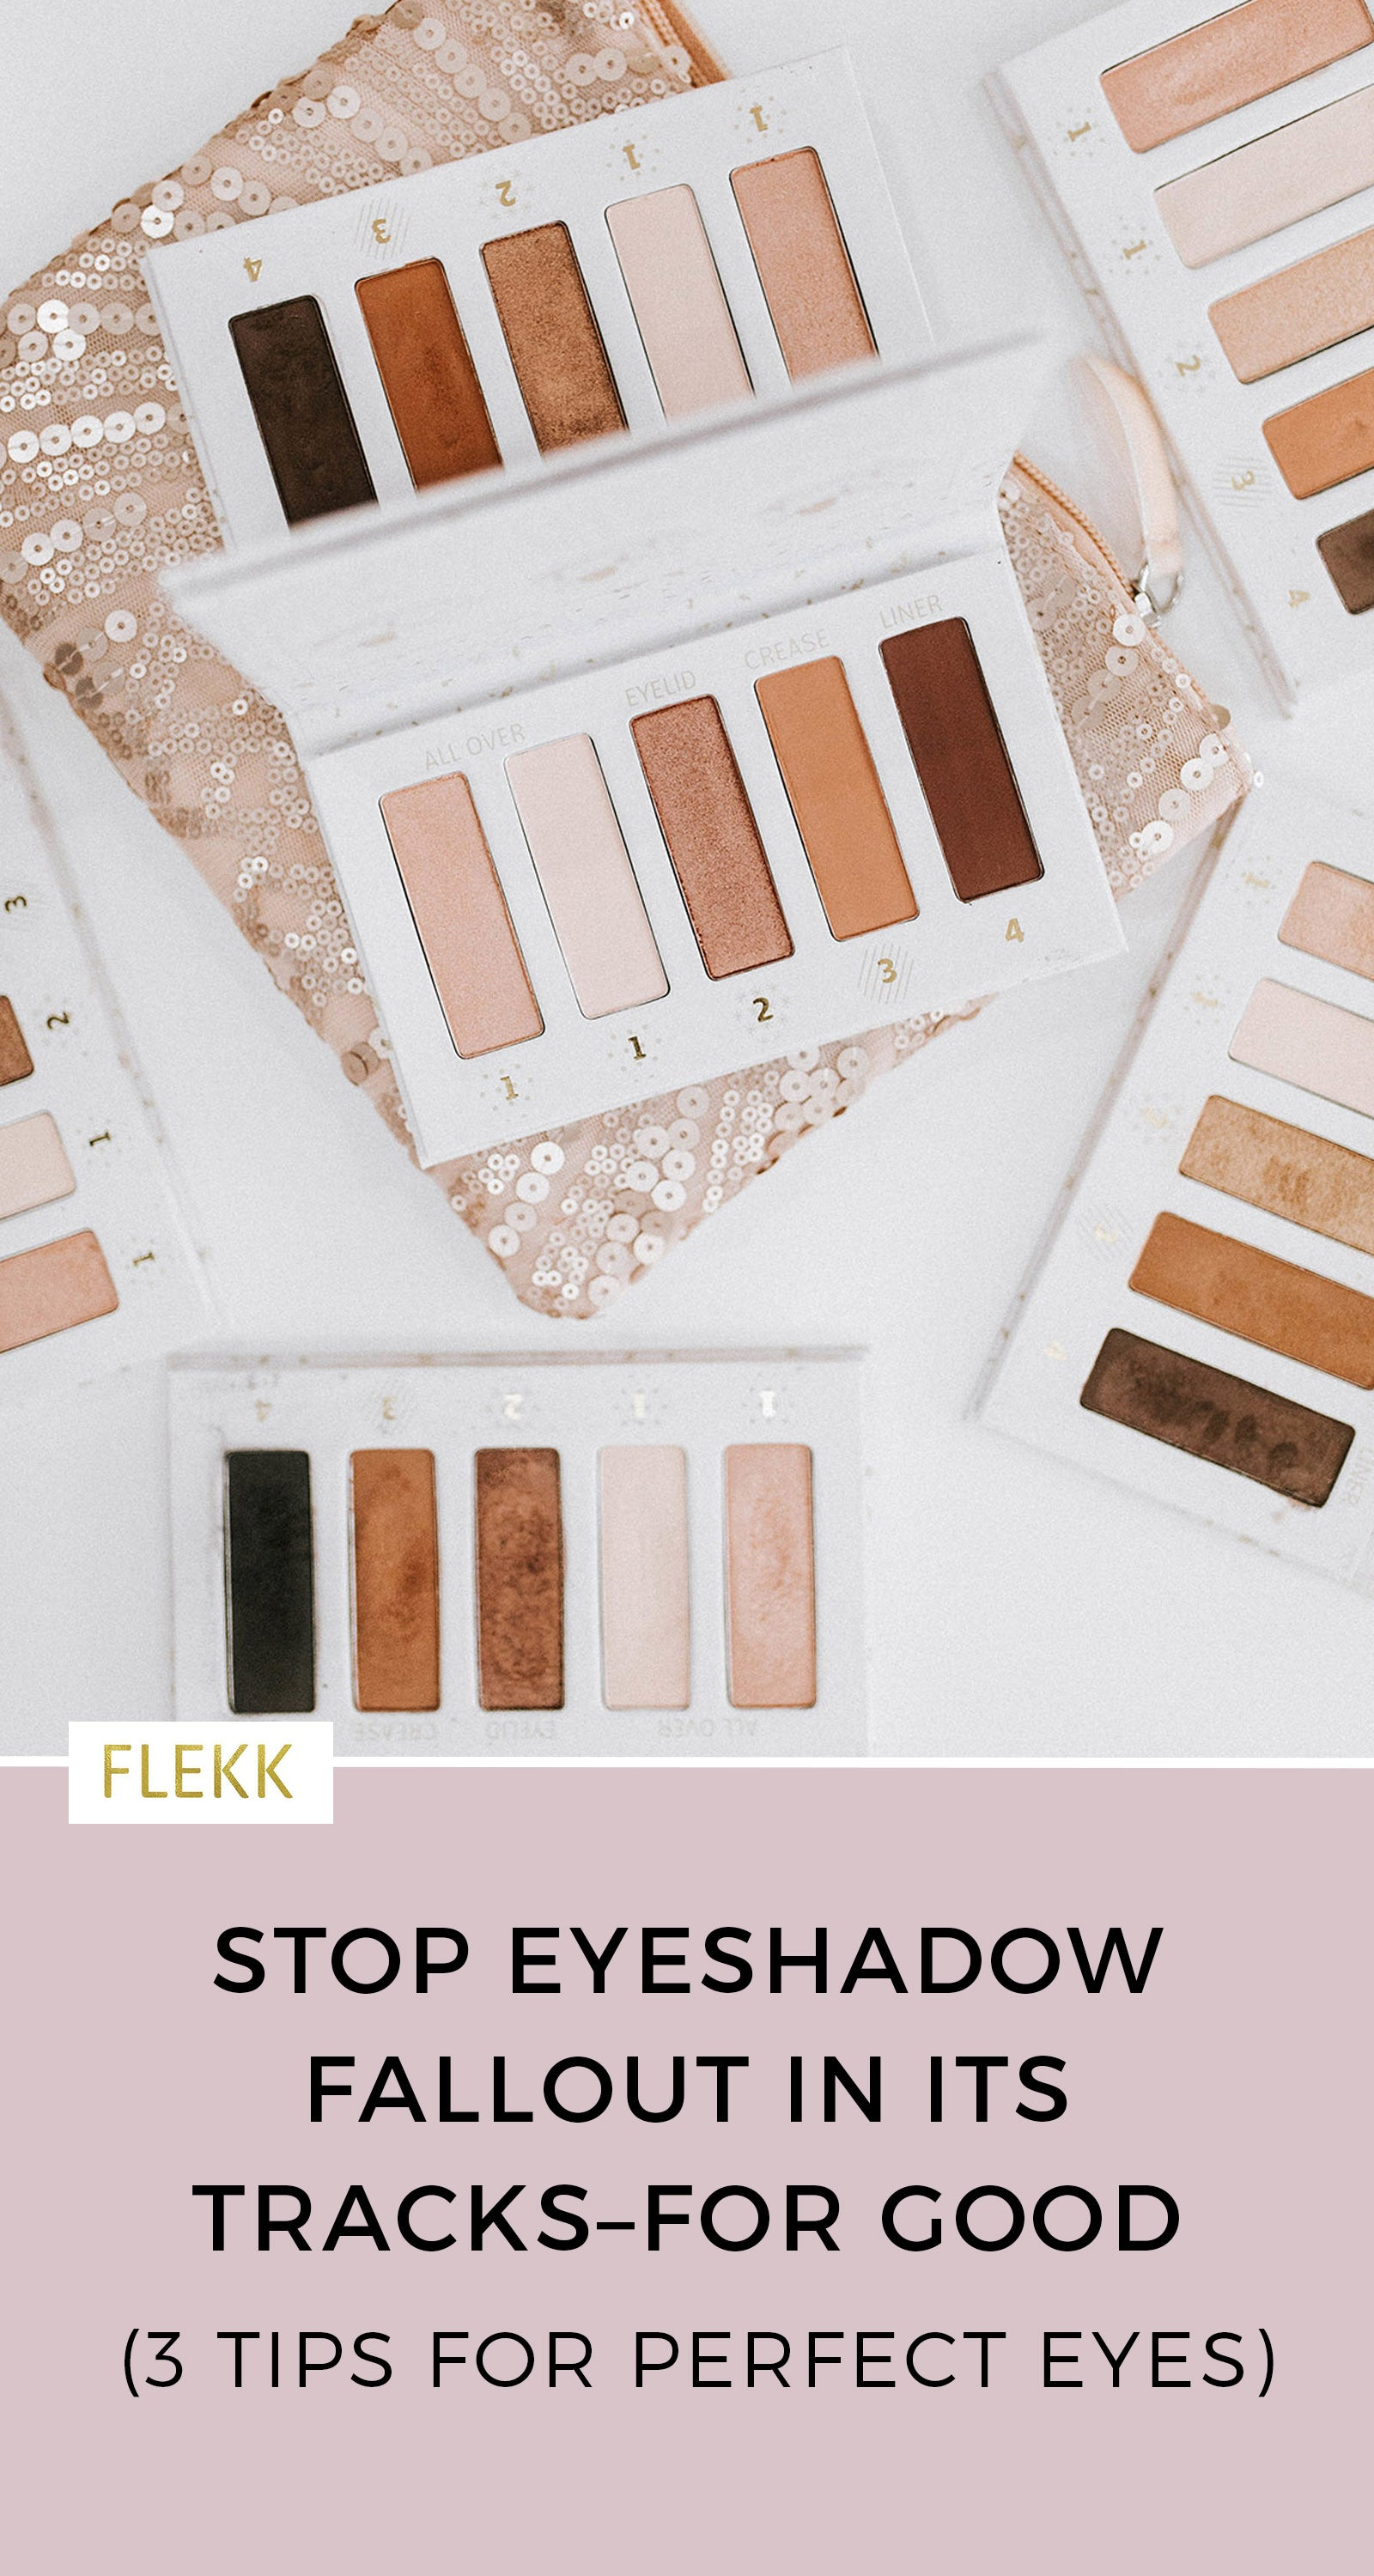 Are you tired of eye shadow fallout? Try these easy eye makeup tips for better eye makeup application. #eyeshadowtips #eyemakeuphelp #eyeshadowfallout #celebritymakeupartist